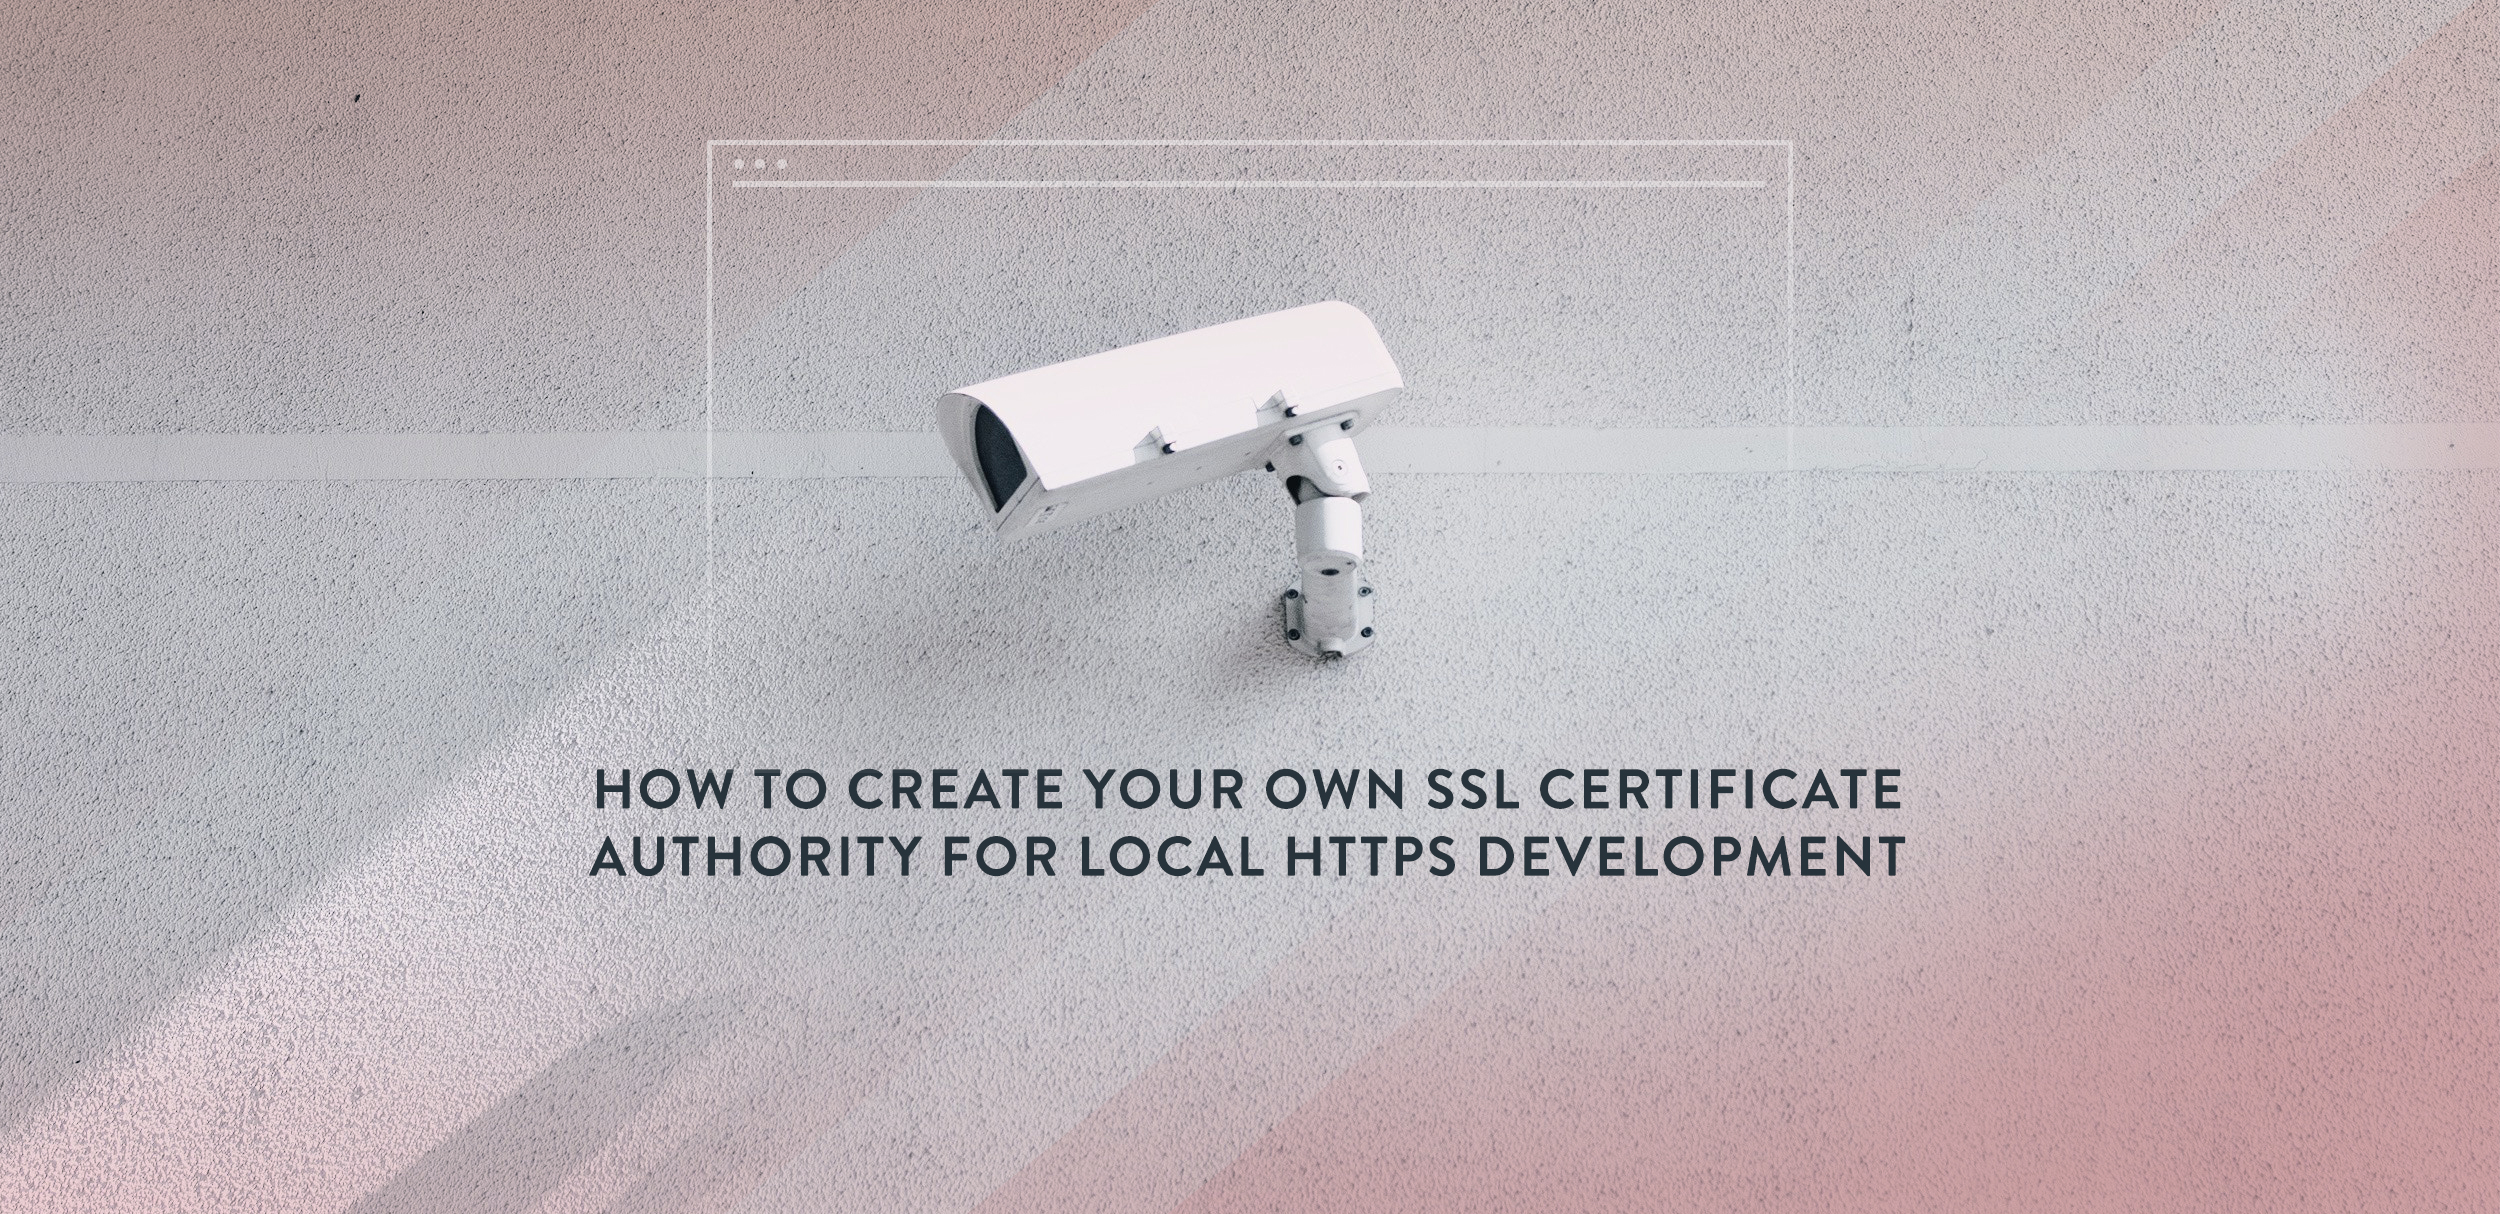 How to create your own ssl certificate authority for local https how to create your own ssl certificate authority for local https development xflitez Gallery